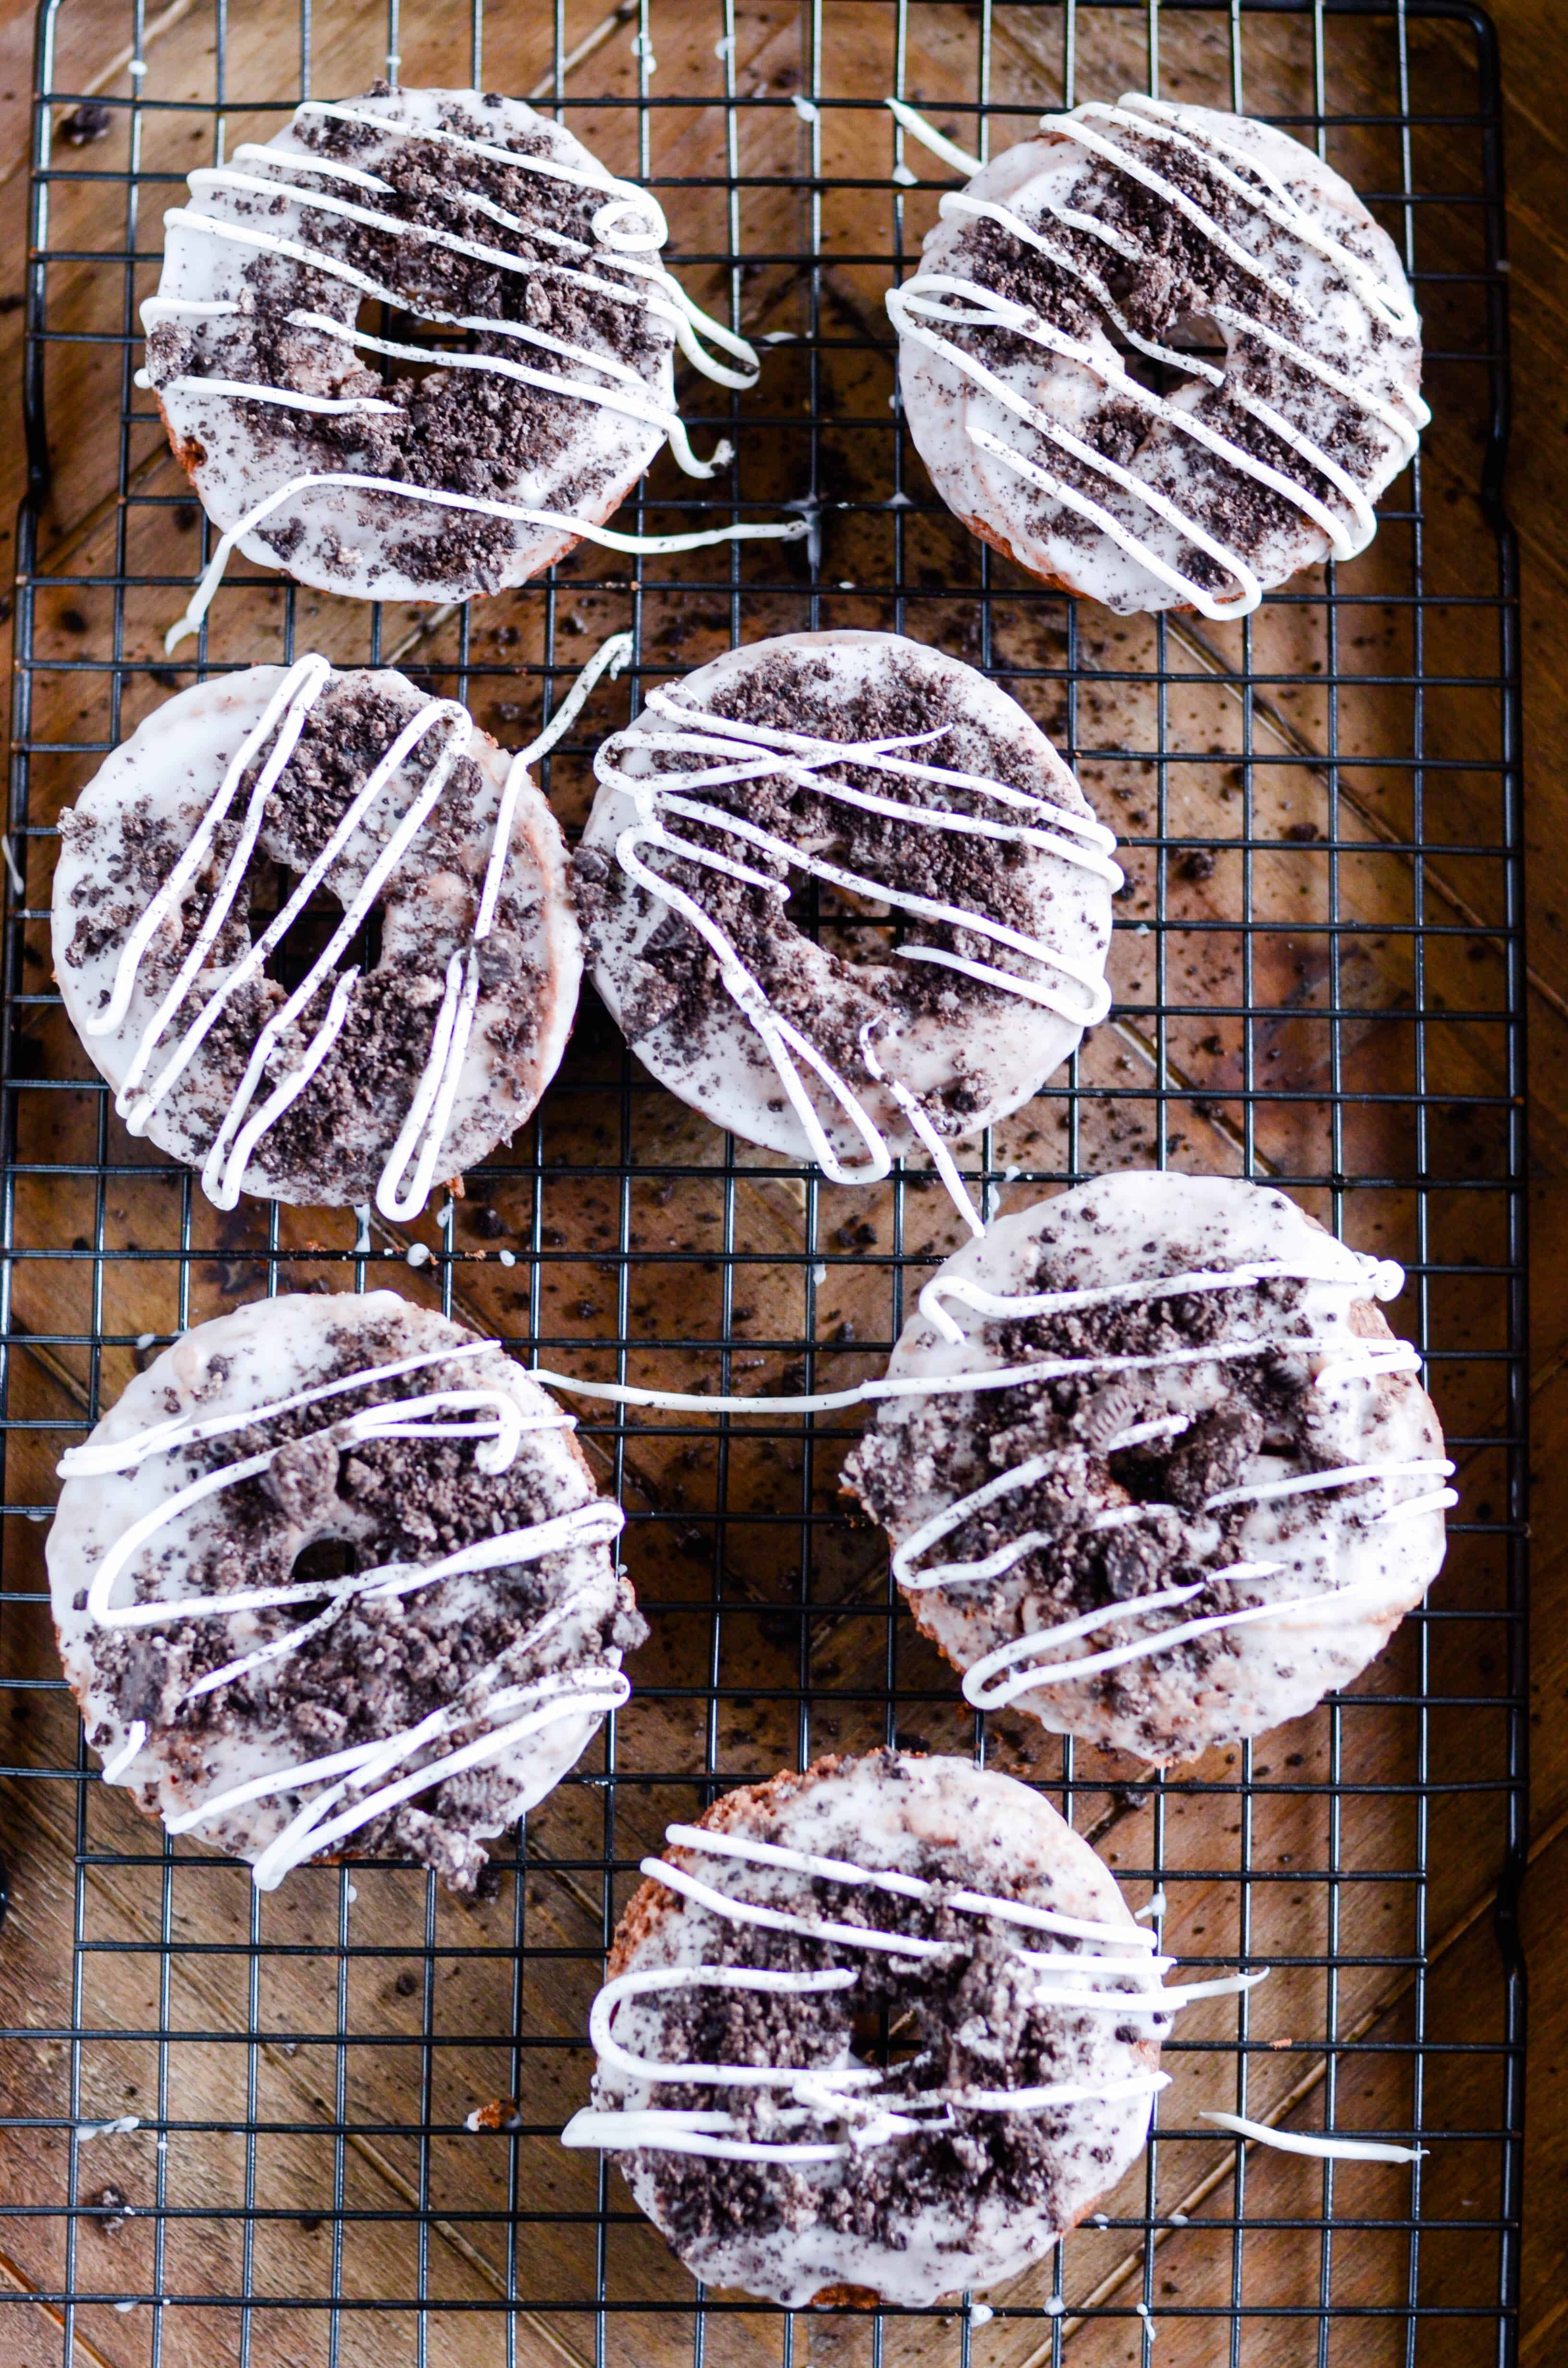 Moist chocolate donuts that are baked instead of fried, topped with a sweet glaze and Oreo crumbles.